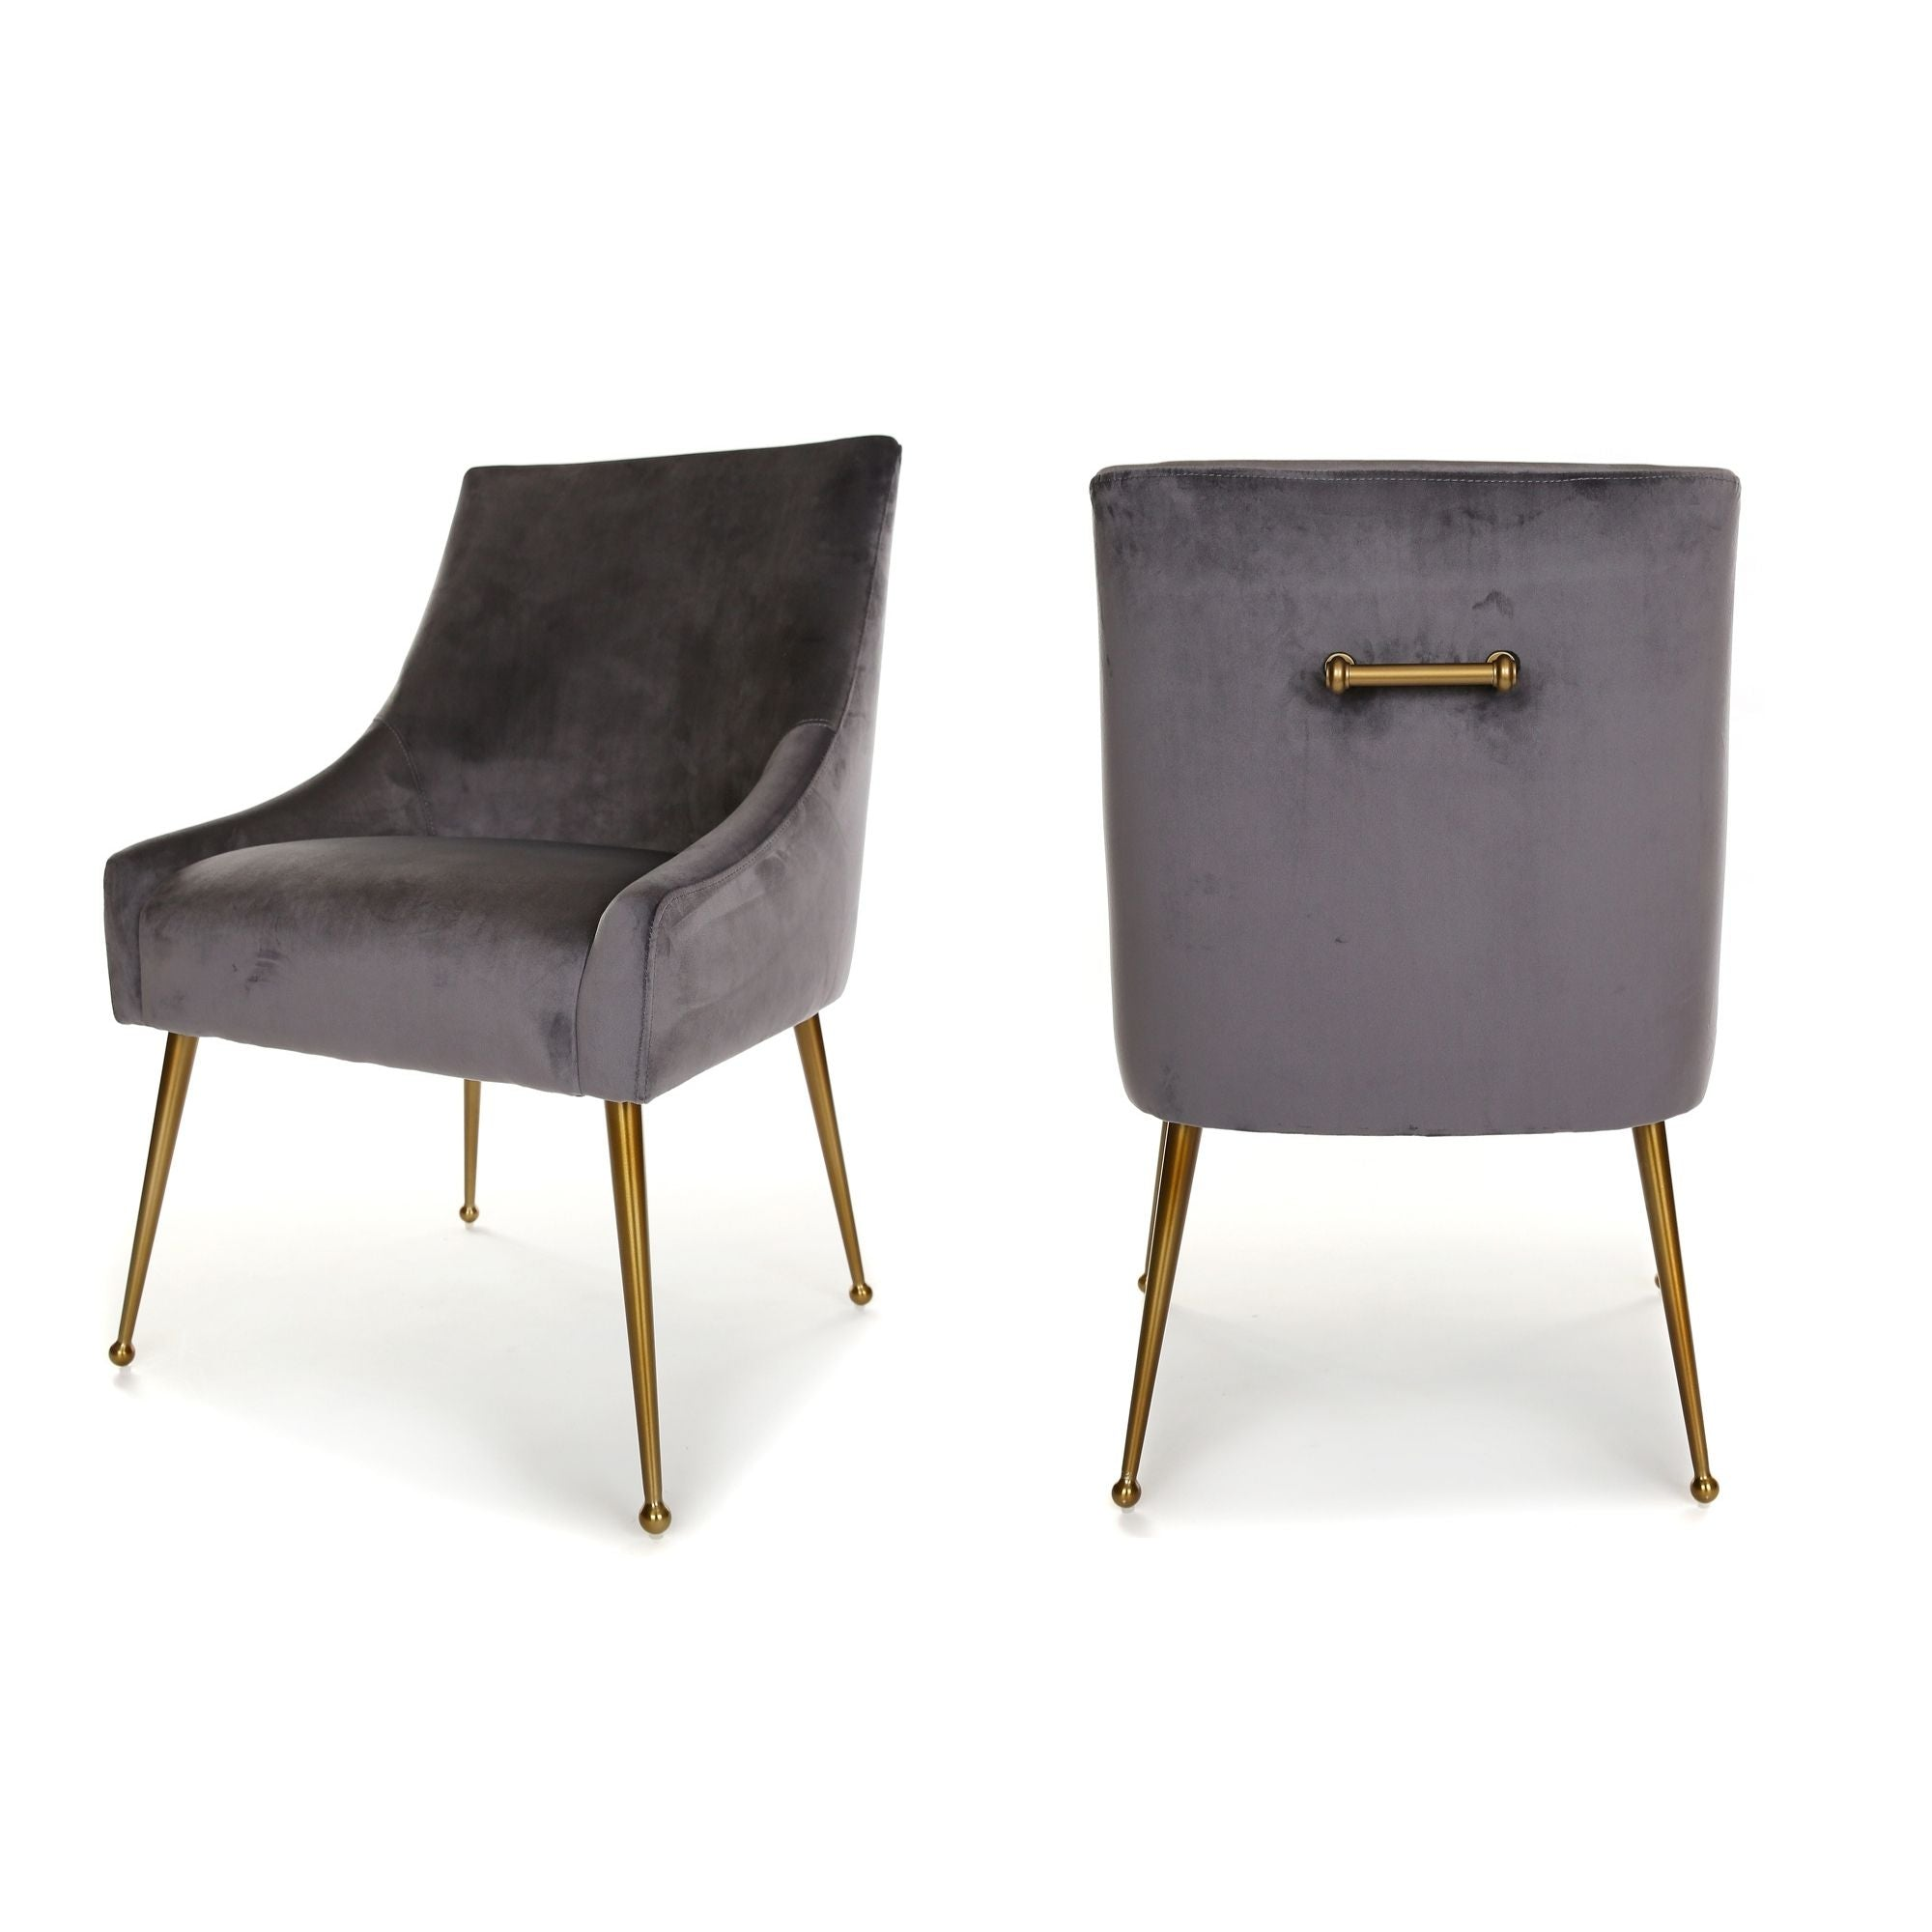 Finn Dining Chair, main image. Upholstered in Dark Grey Velvet, with Brushed Gold Legs and handle